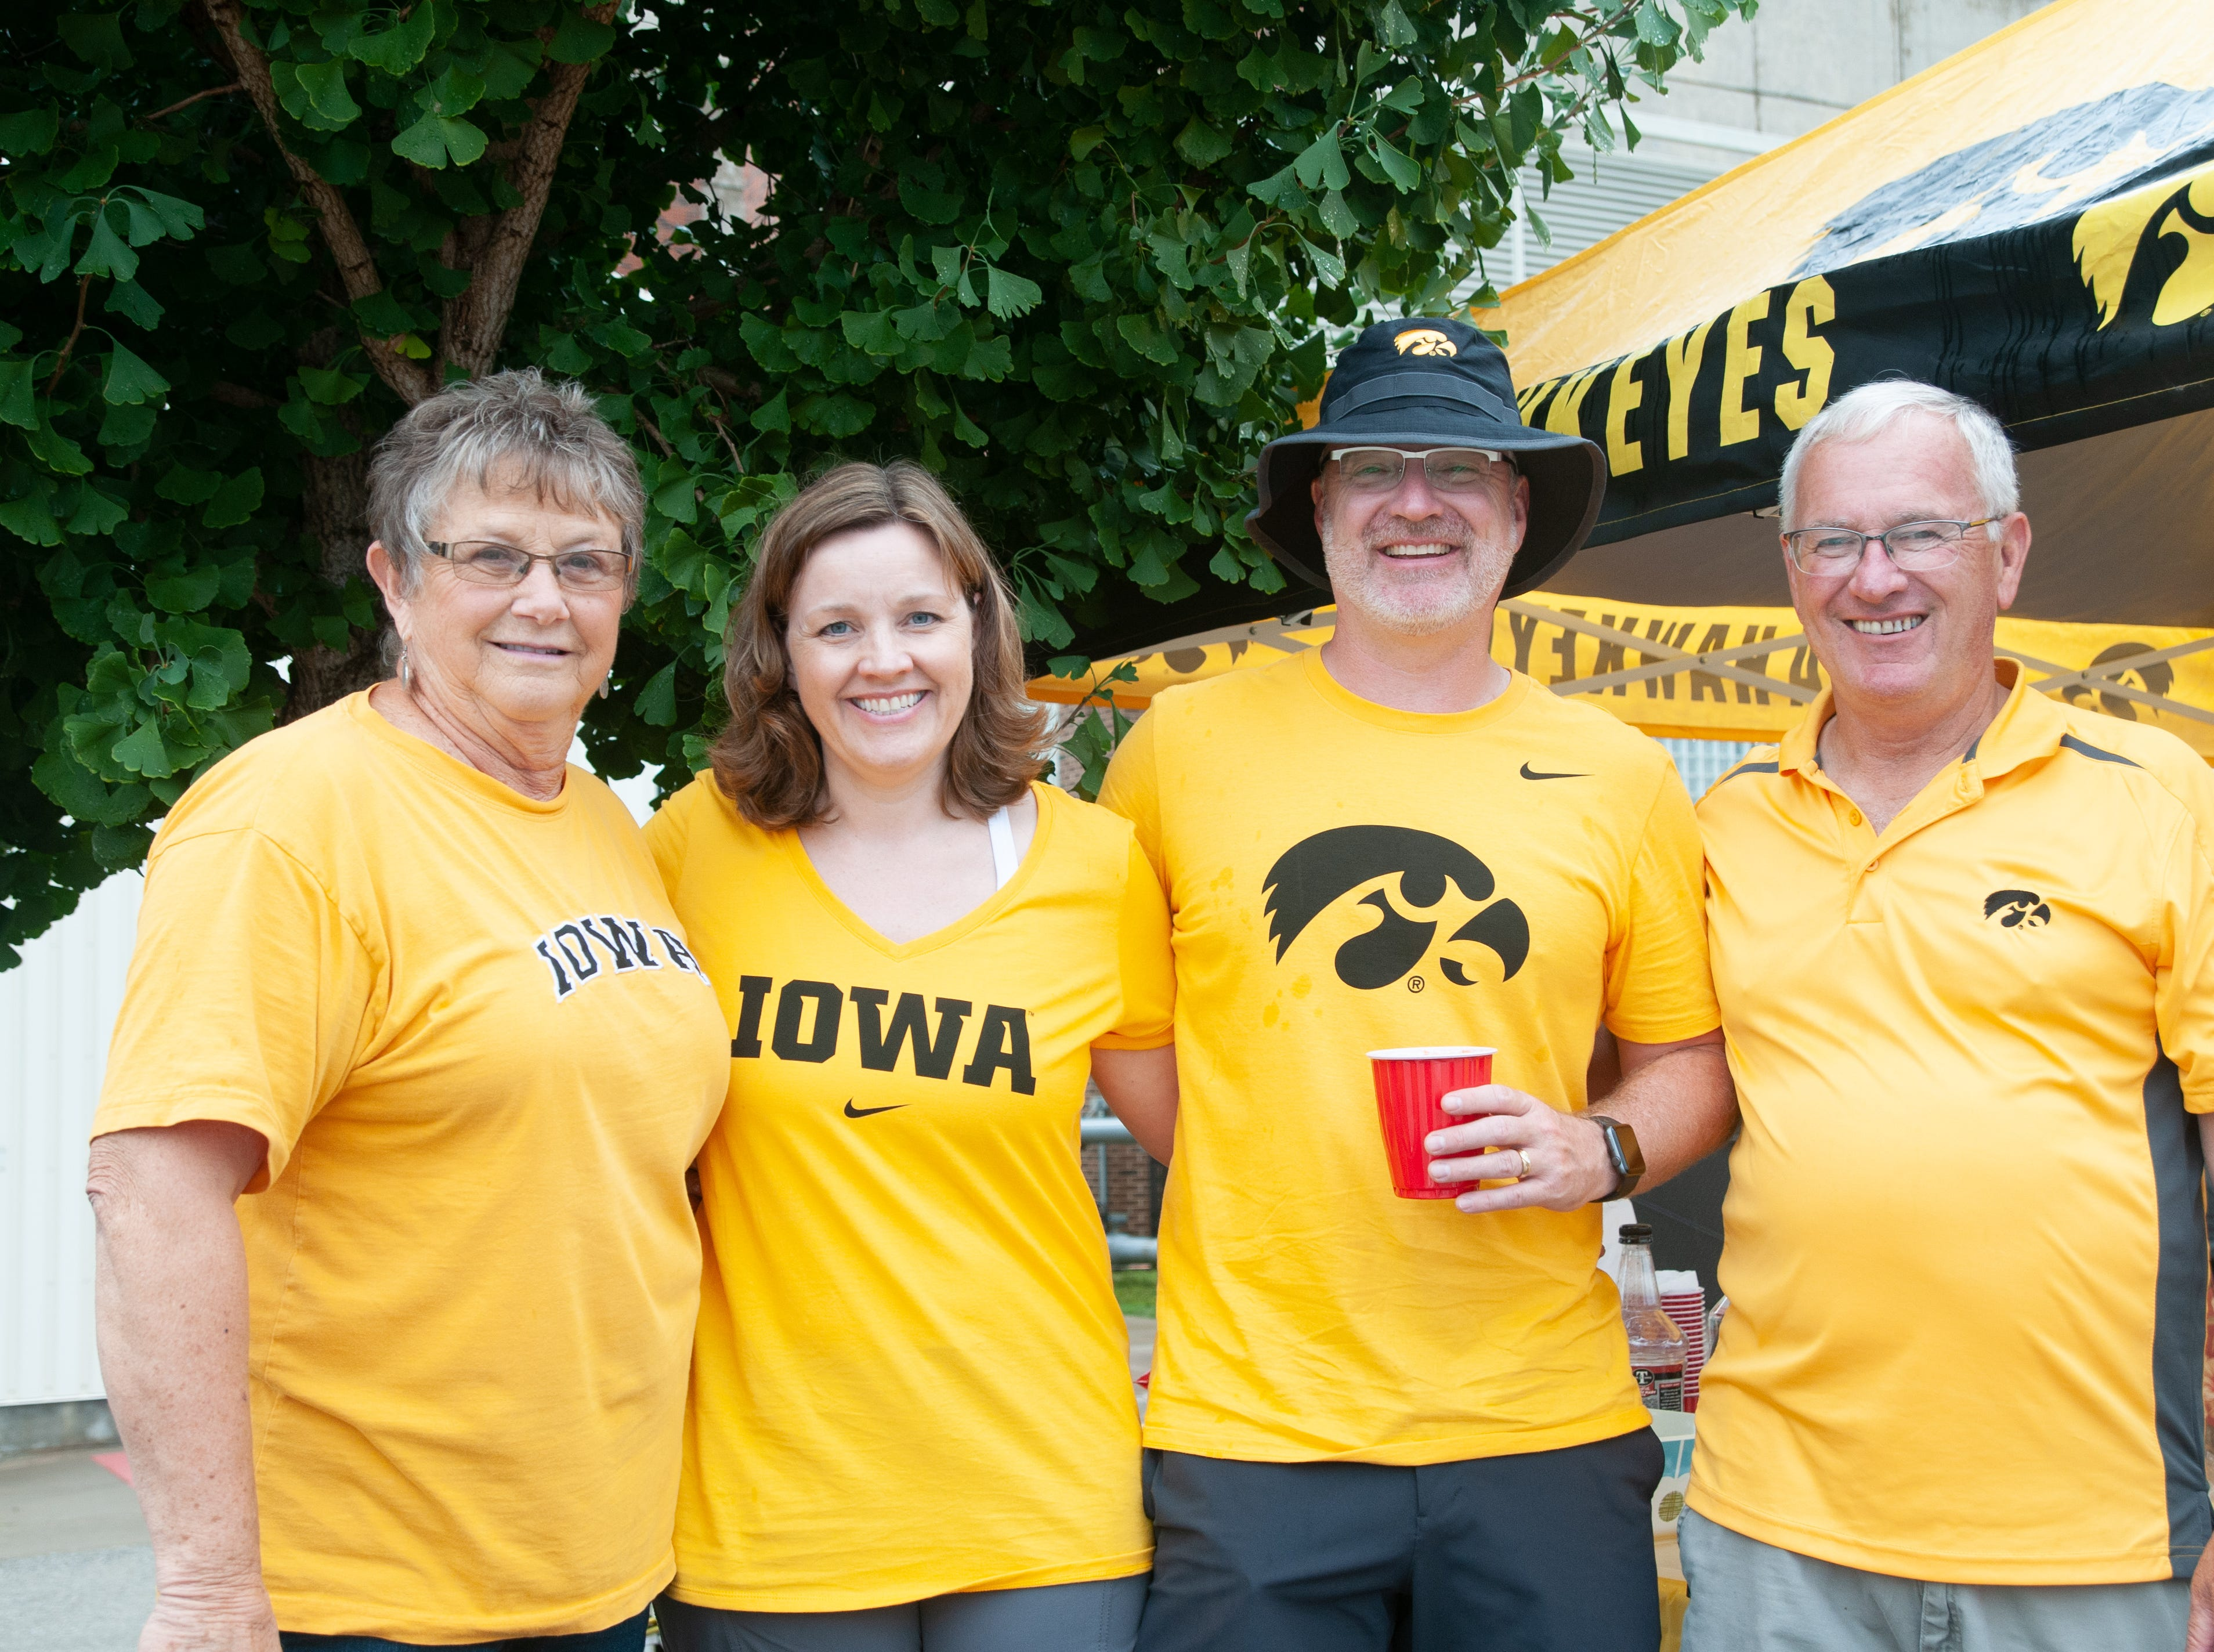 Judy, 76, (left), Nikki, 47, Curt, 48, and Mike Strait, 65, of Washington and Minneapolis, Saturday, Sept. 1, 2018, while tailgating before the Iowa game against Northern Illinois in Iowa City.